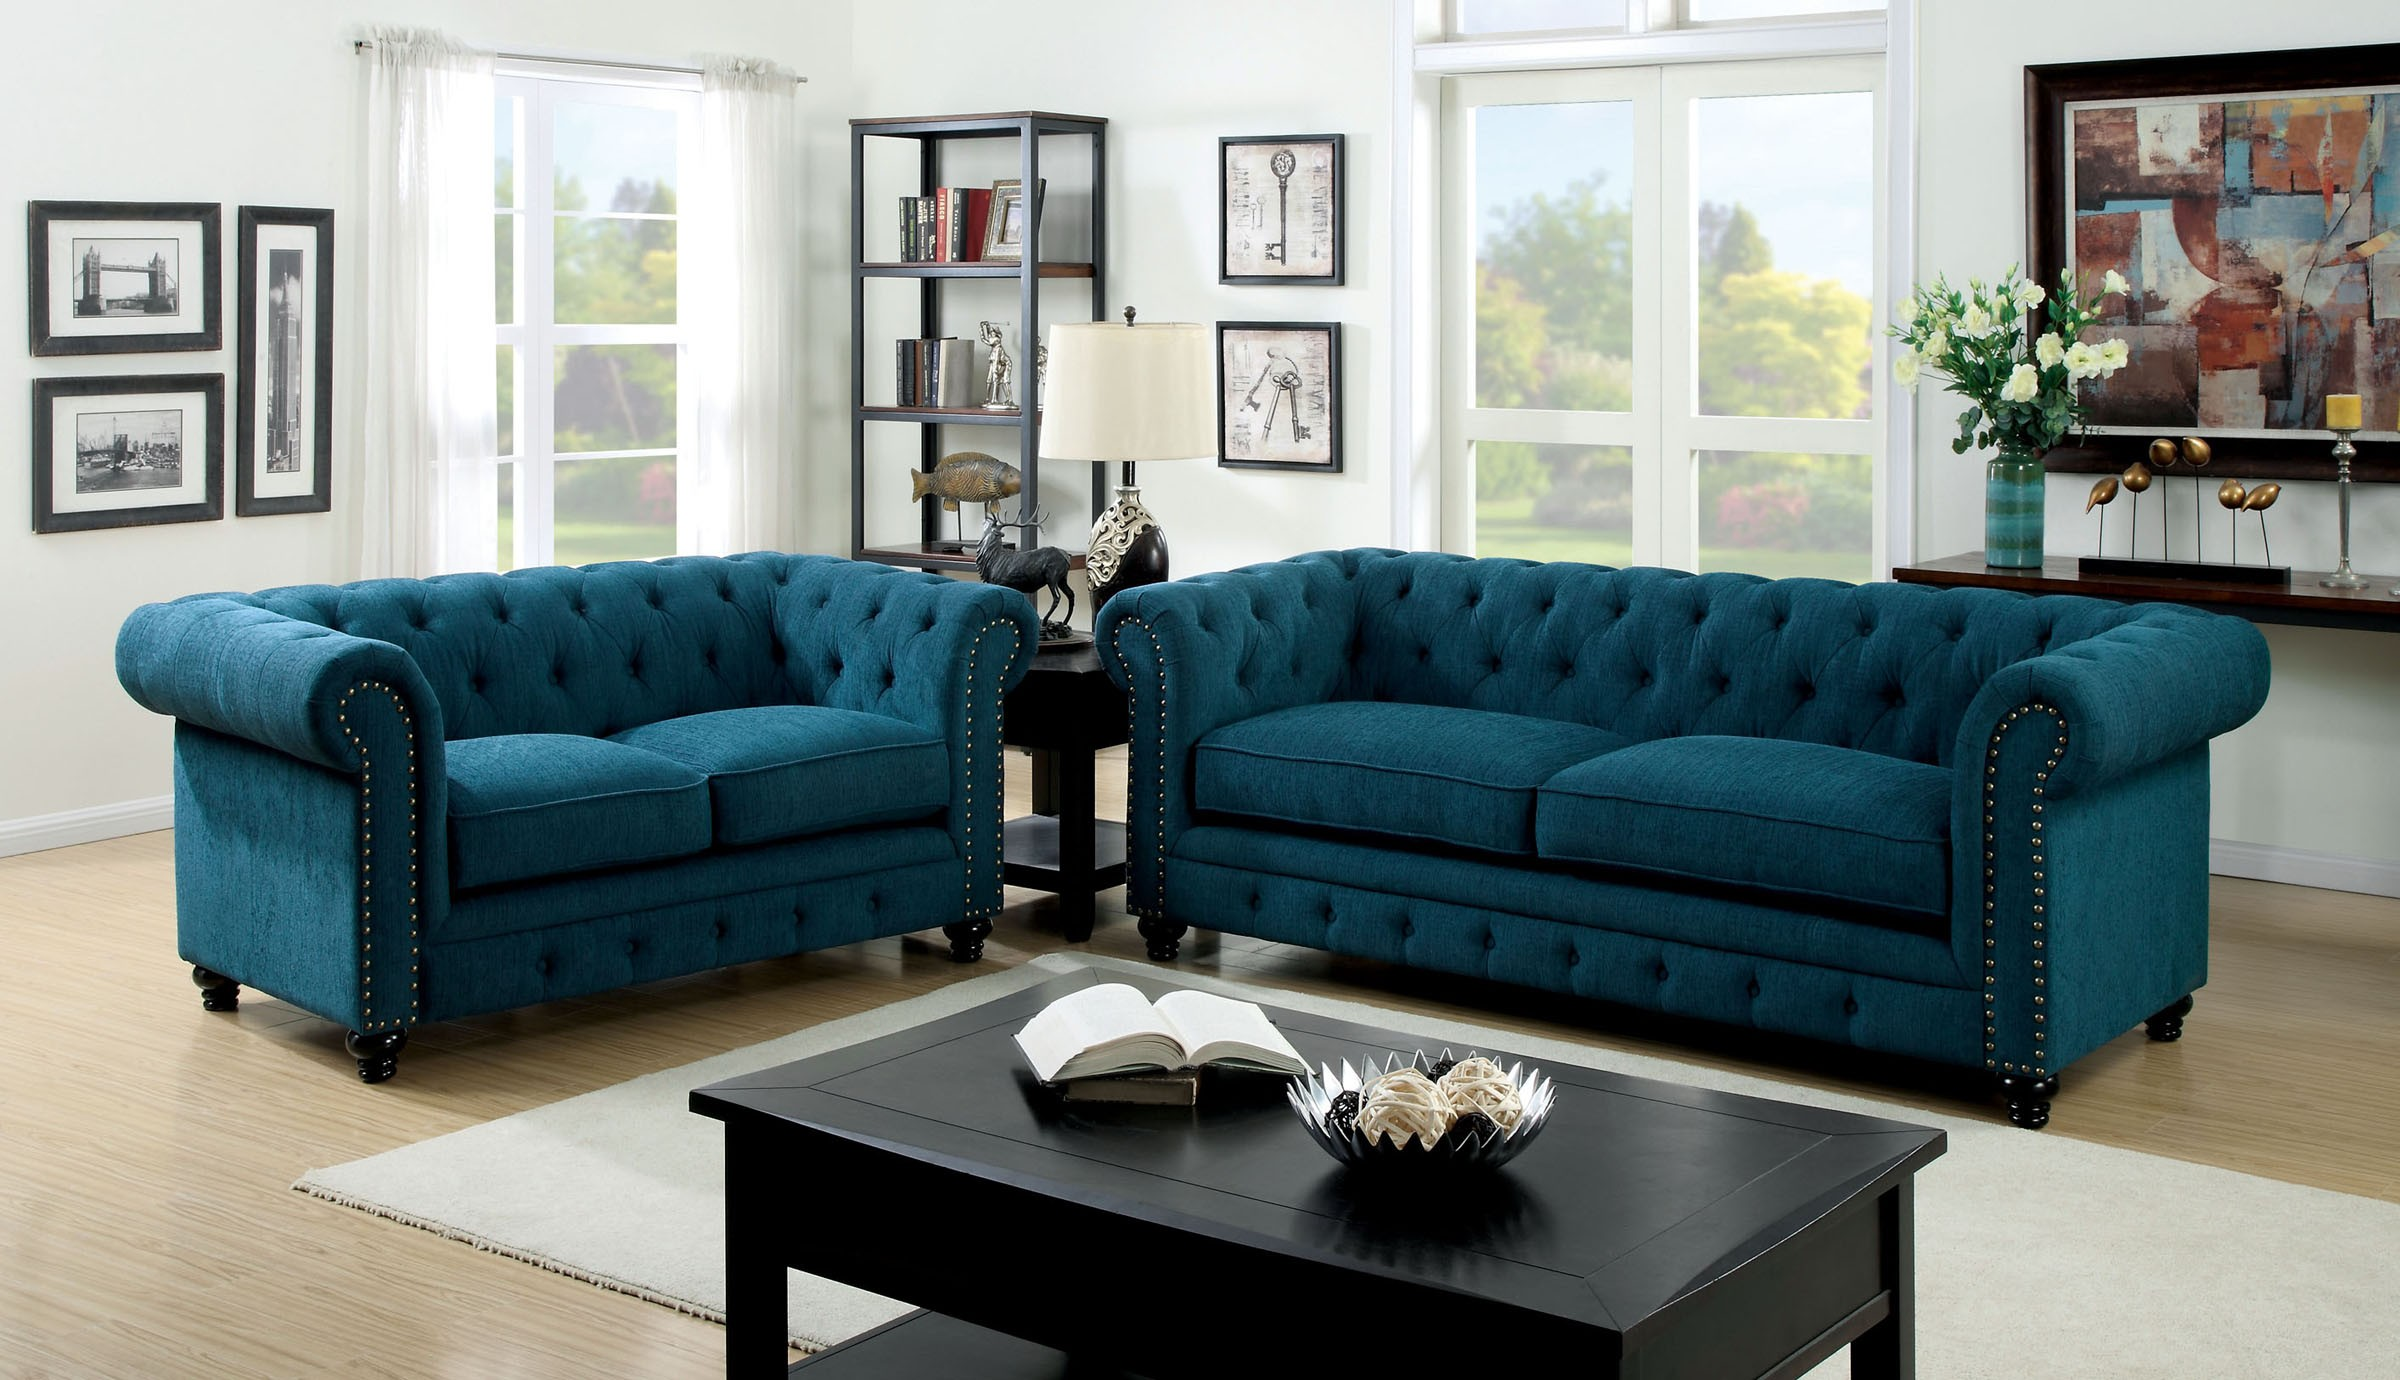 Stanford dark teal fabric living room set from furniture for Lounge for living room